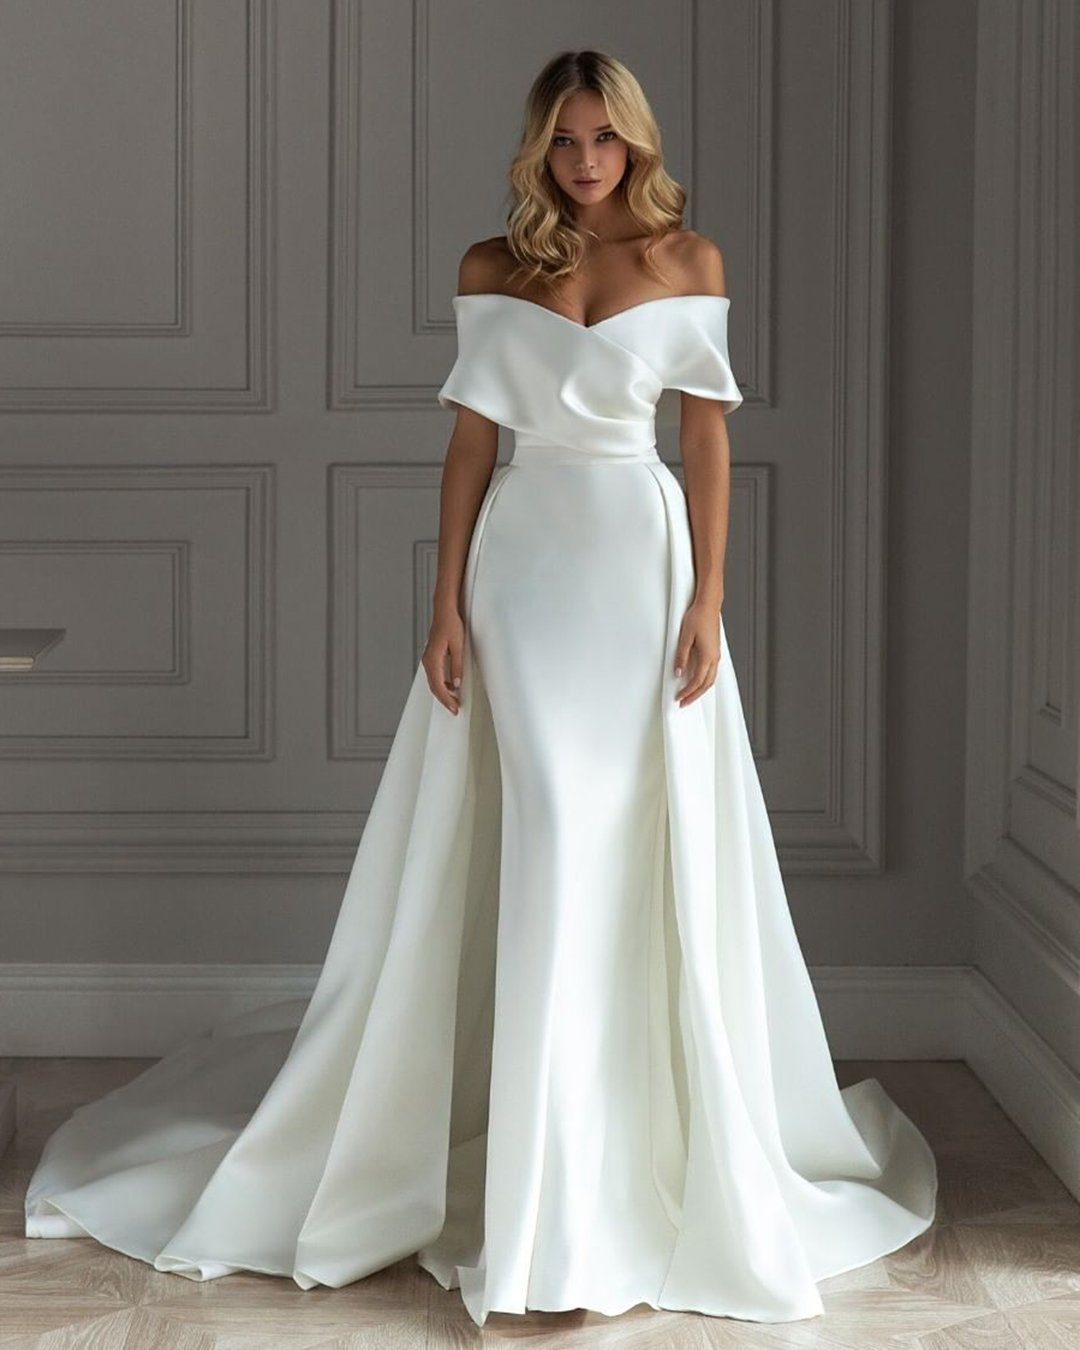 popular instagram posts 2020 wedding dresses simple sheath off the shoulder eva lender